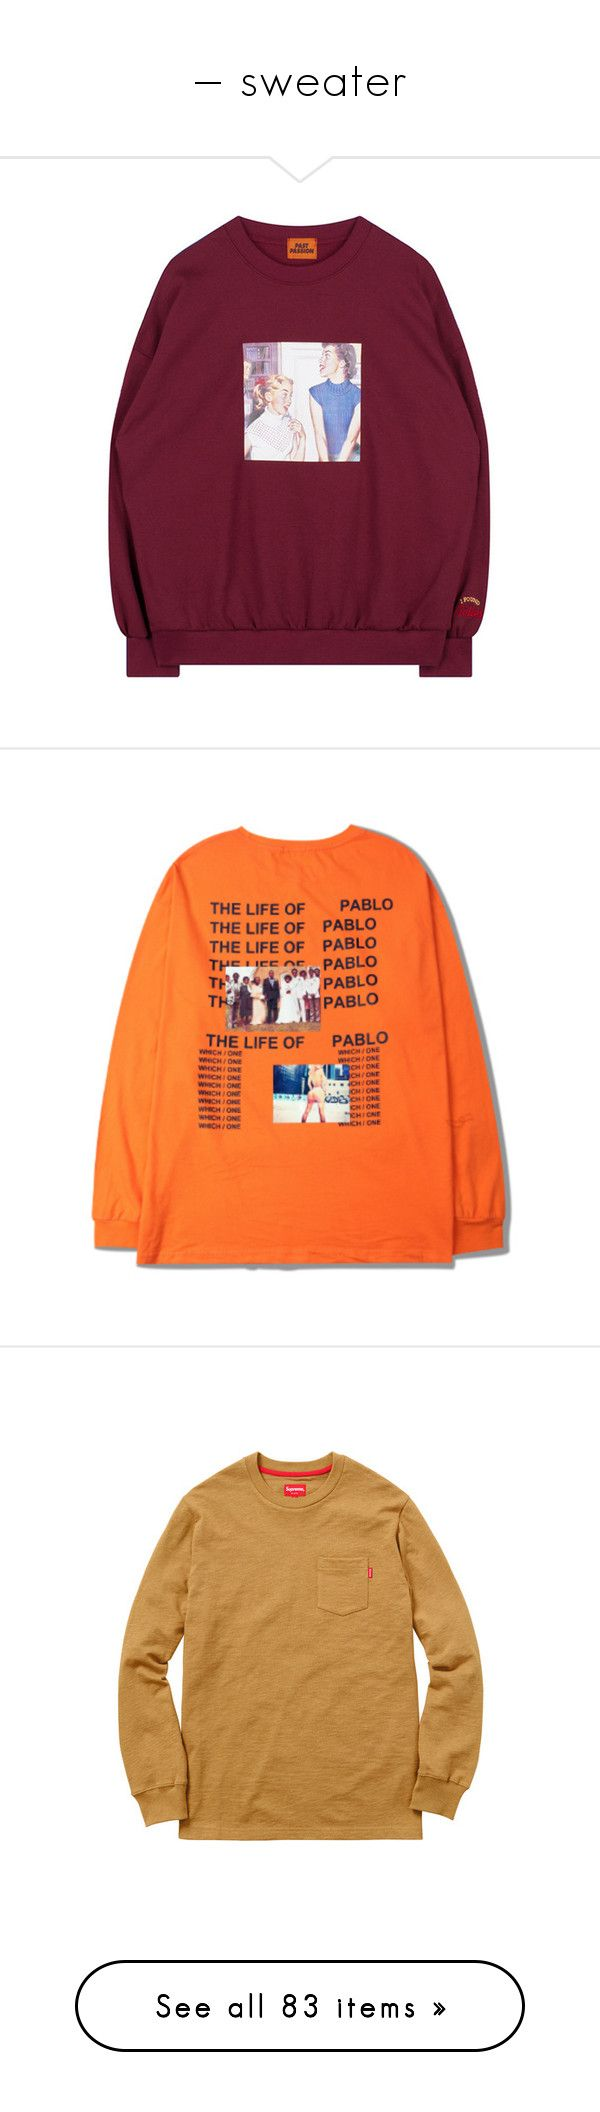 """— sweater"" by dean-official ❤ liked on Polyvore featuring tops, t-shirts, jumper, shirts, sweaters, orange top, orange t shirt, t shirt, long sleeve shirts and long sleeve tees"